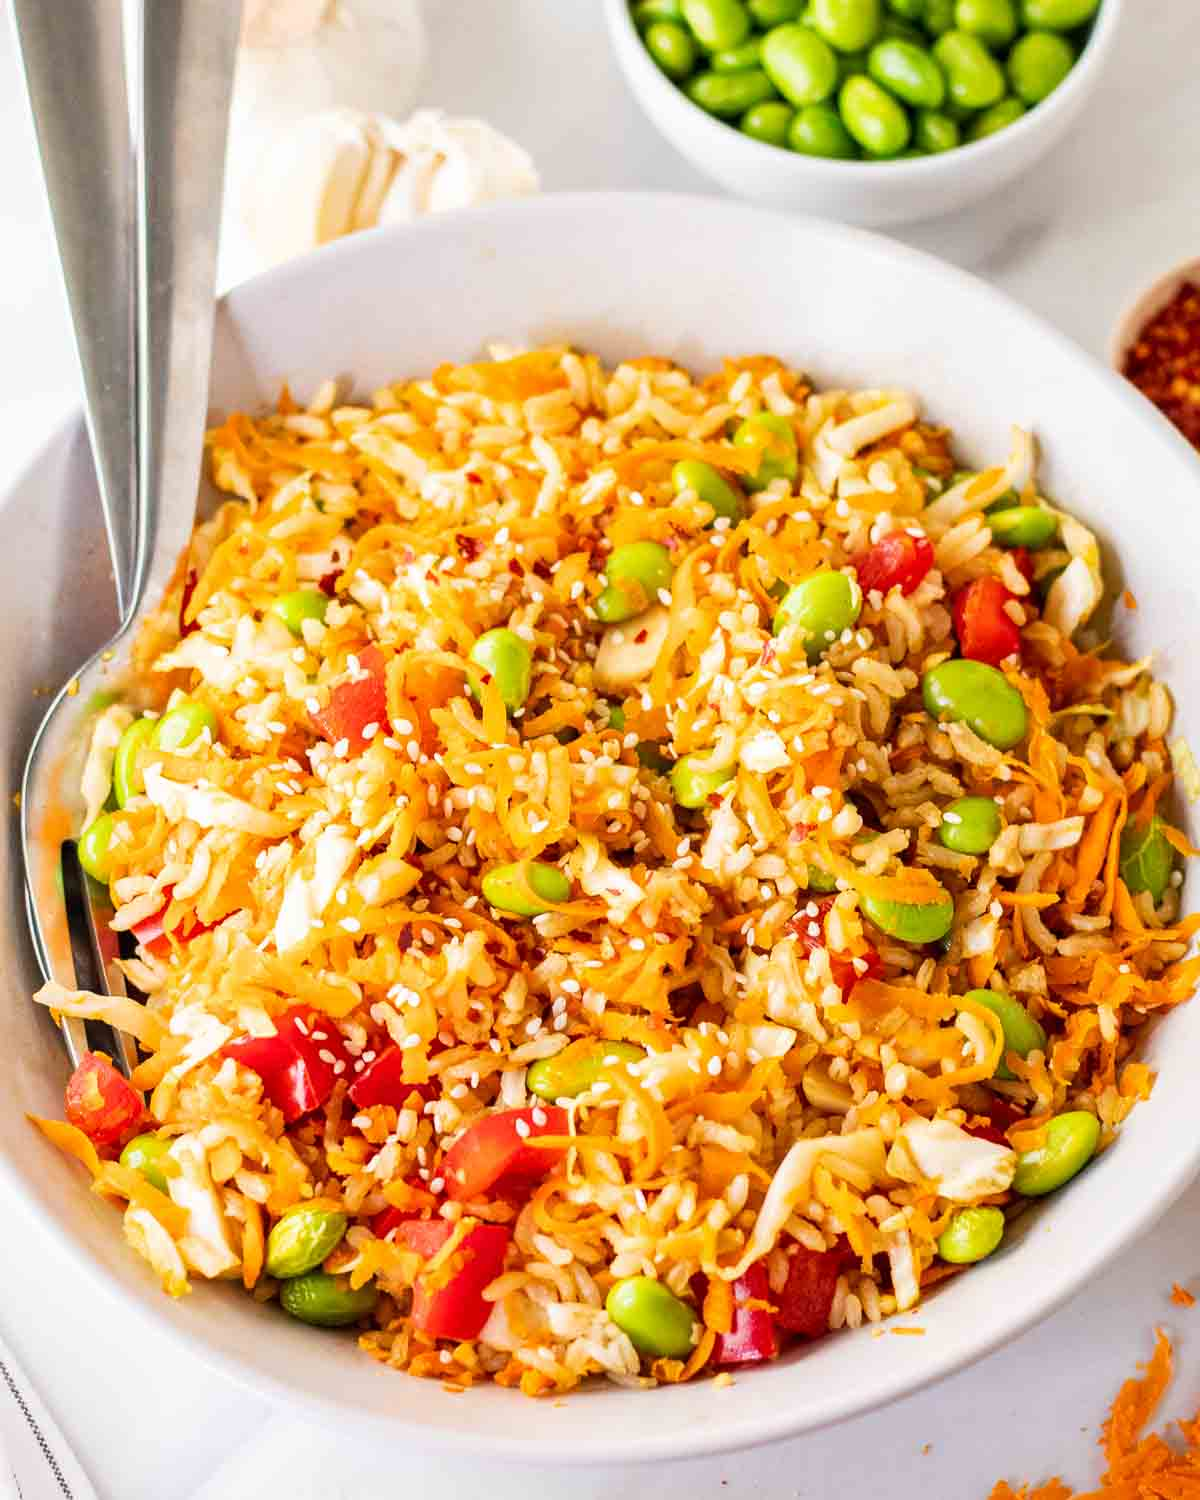 Rice salad in a bowl with fork and spoon on the side. There is a bowl of edamame in the background.